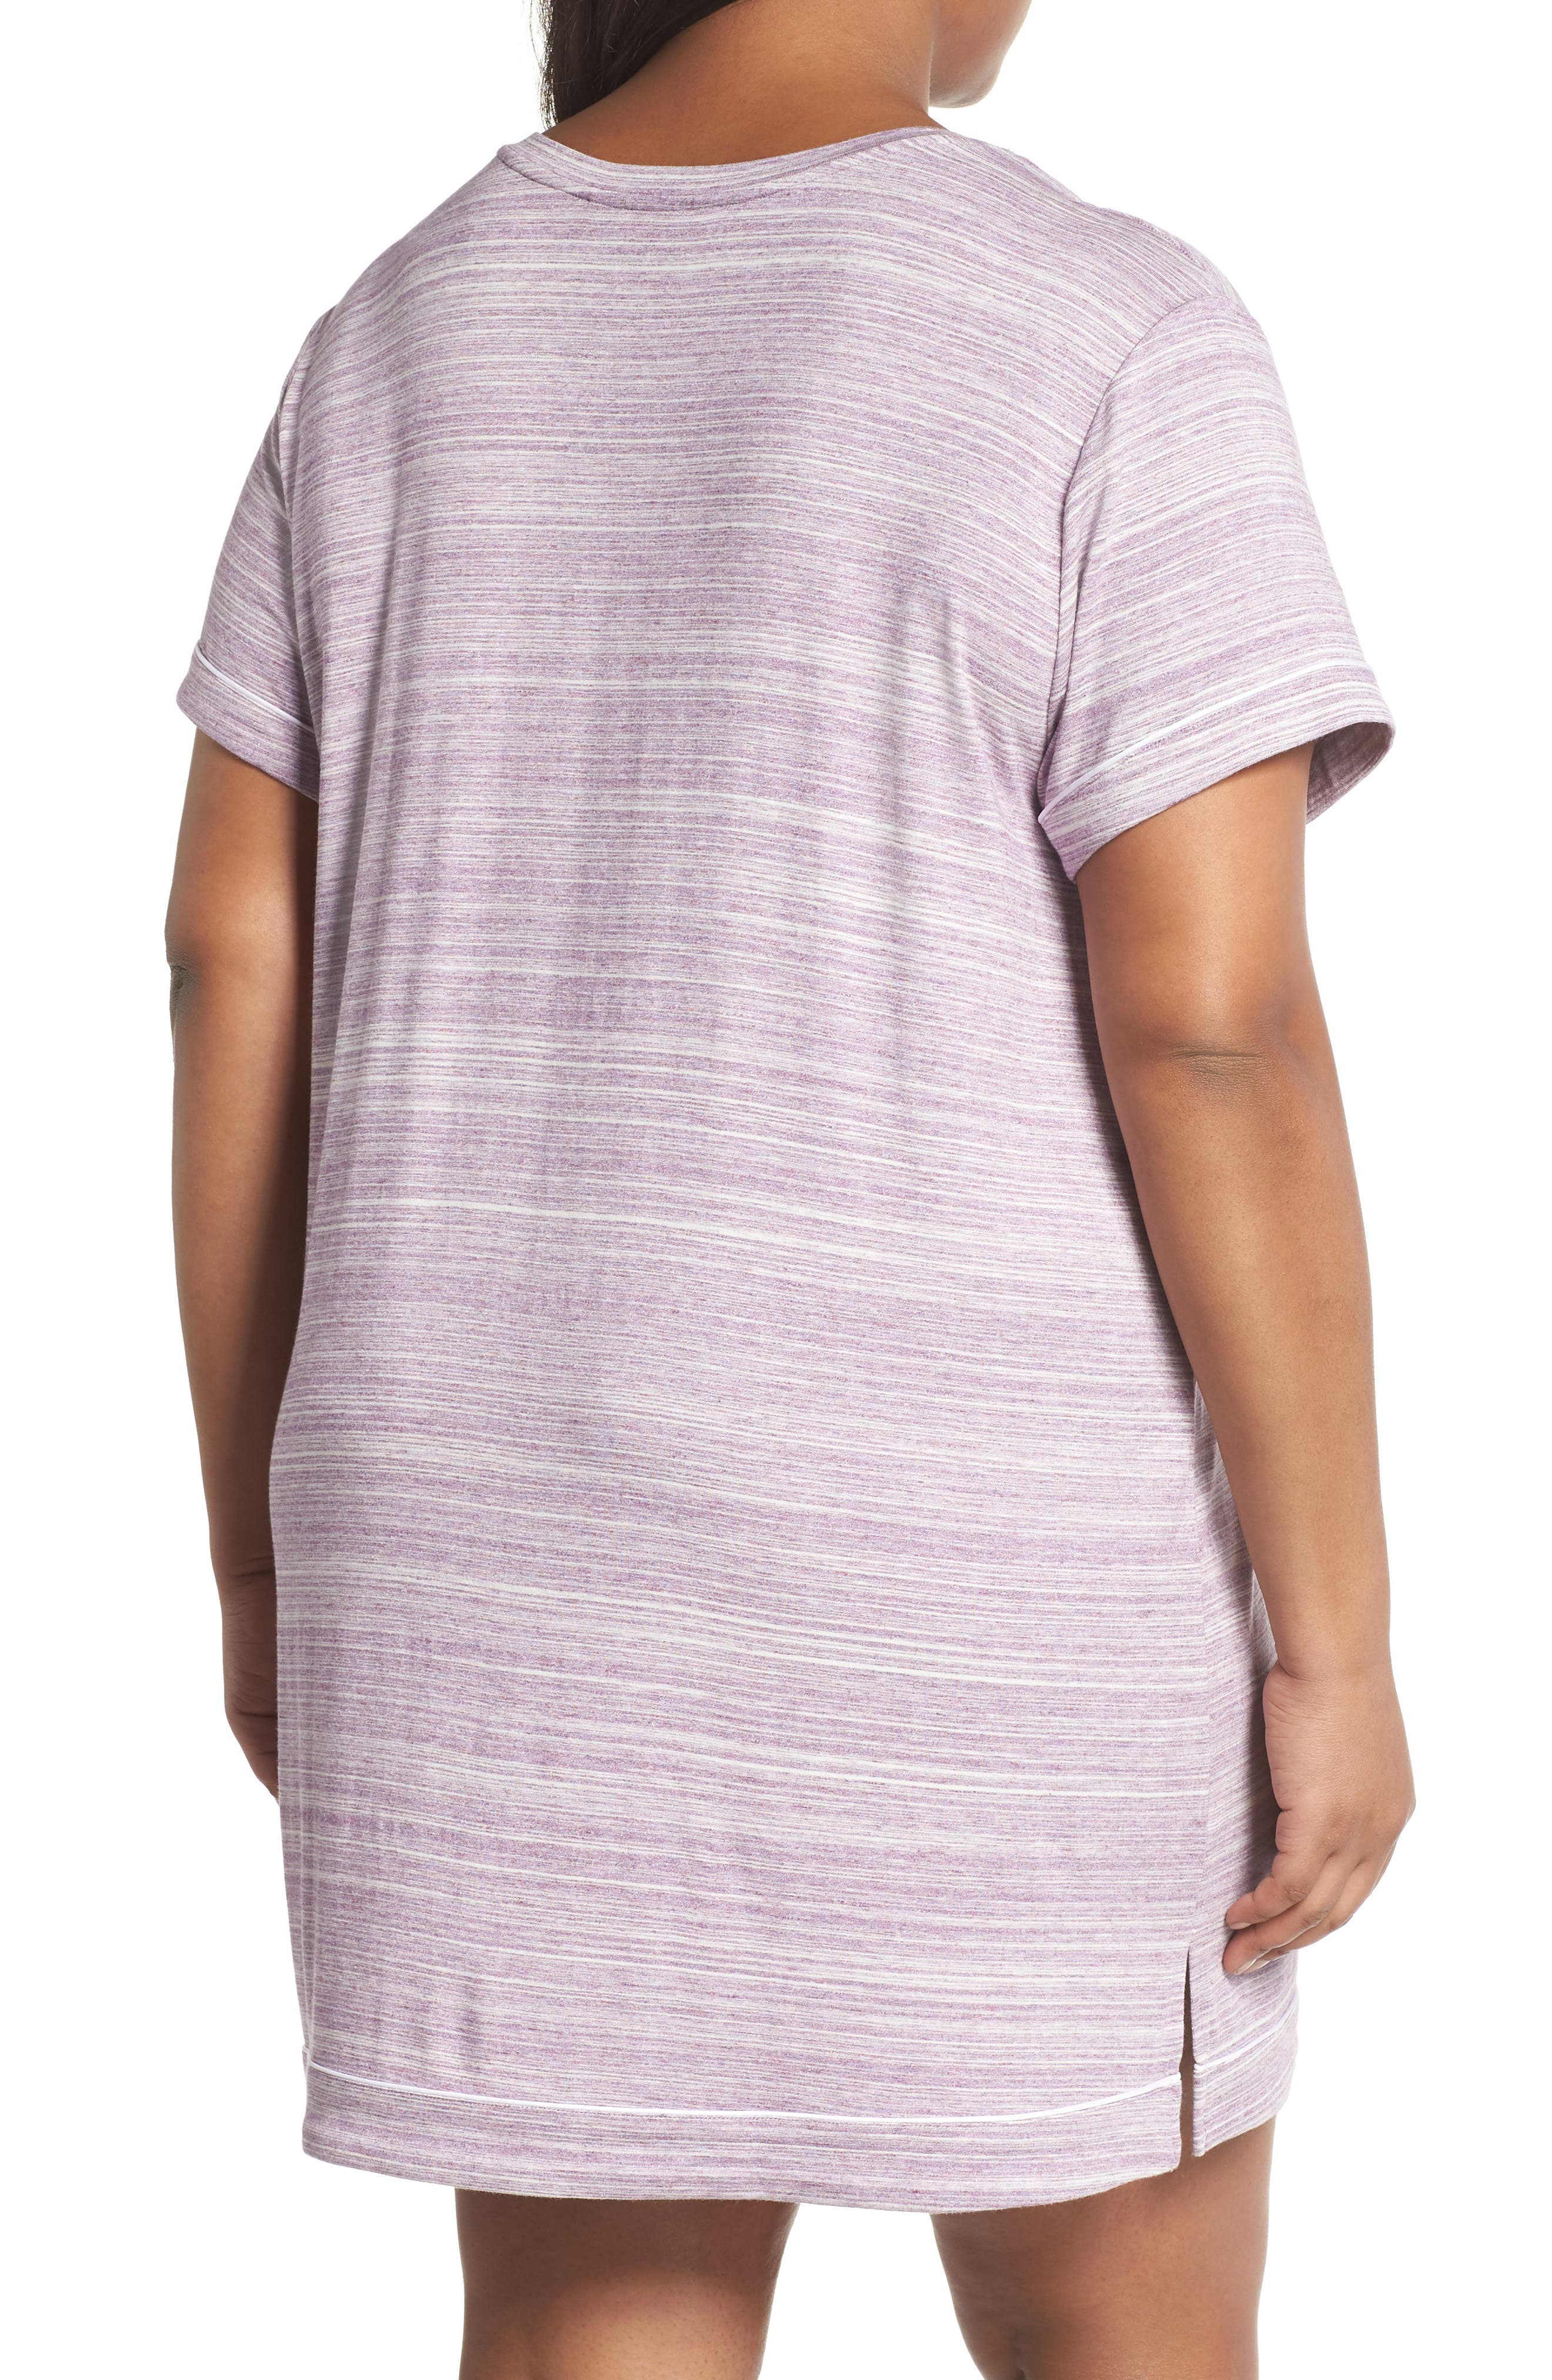 Moonlight V-Neck Nightshirt,                             Alternate thumbnail 2, color,                             Purple Spacedye